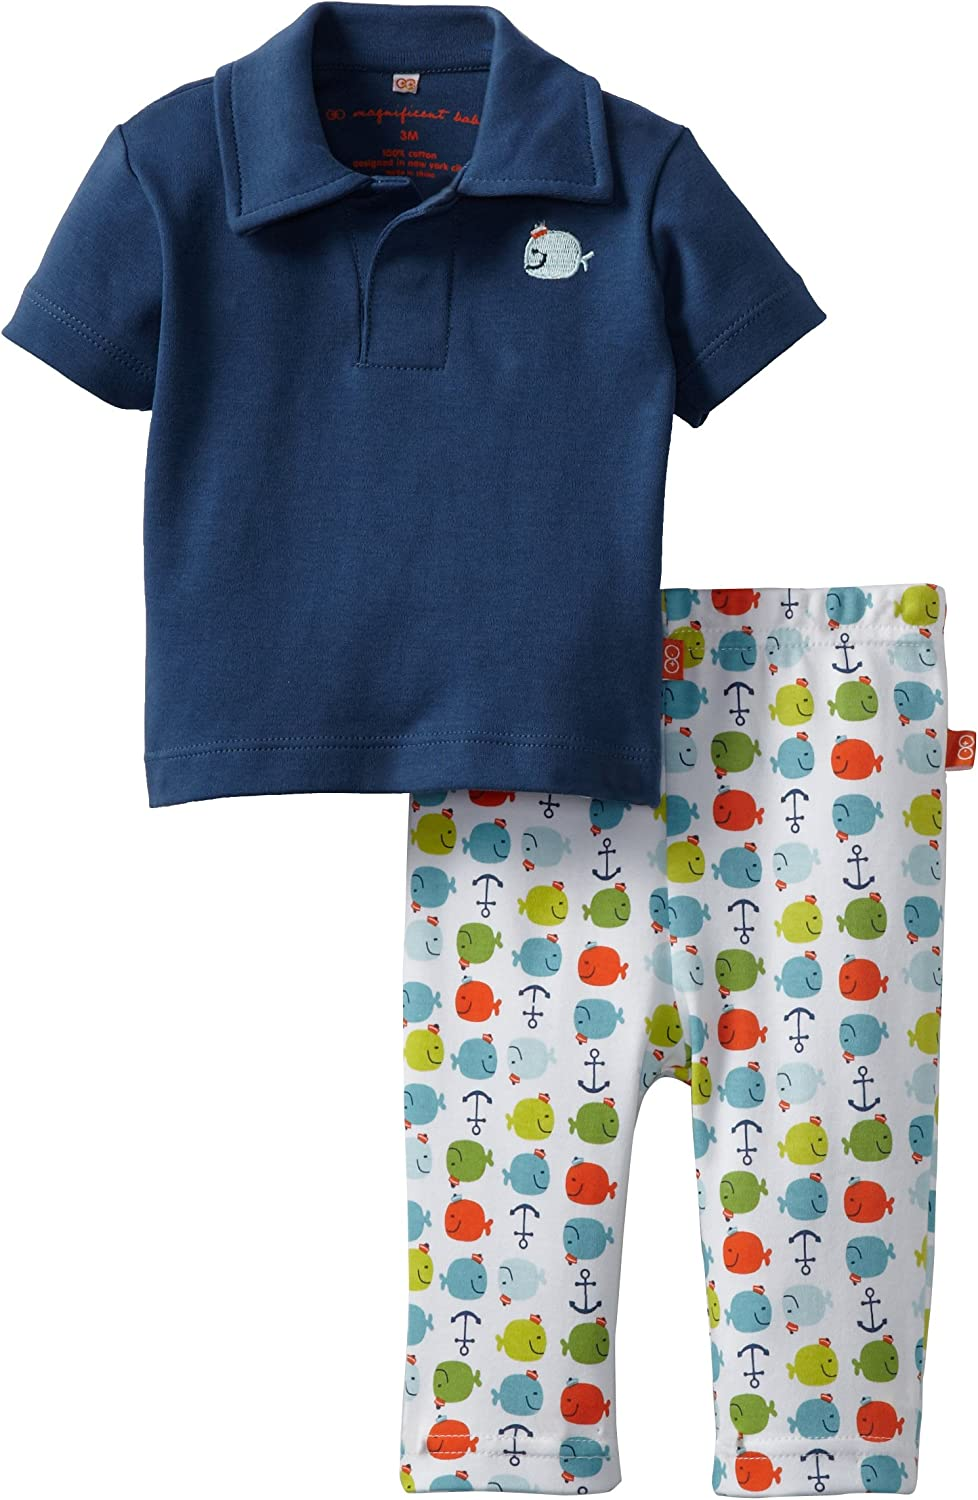 Magnificent Baby-Boys Newborn Polo Shirt And Pant, Navy Blue, 6 Months